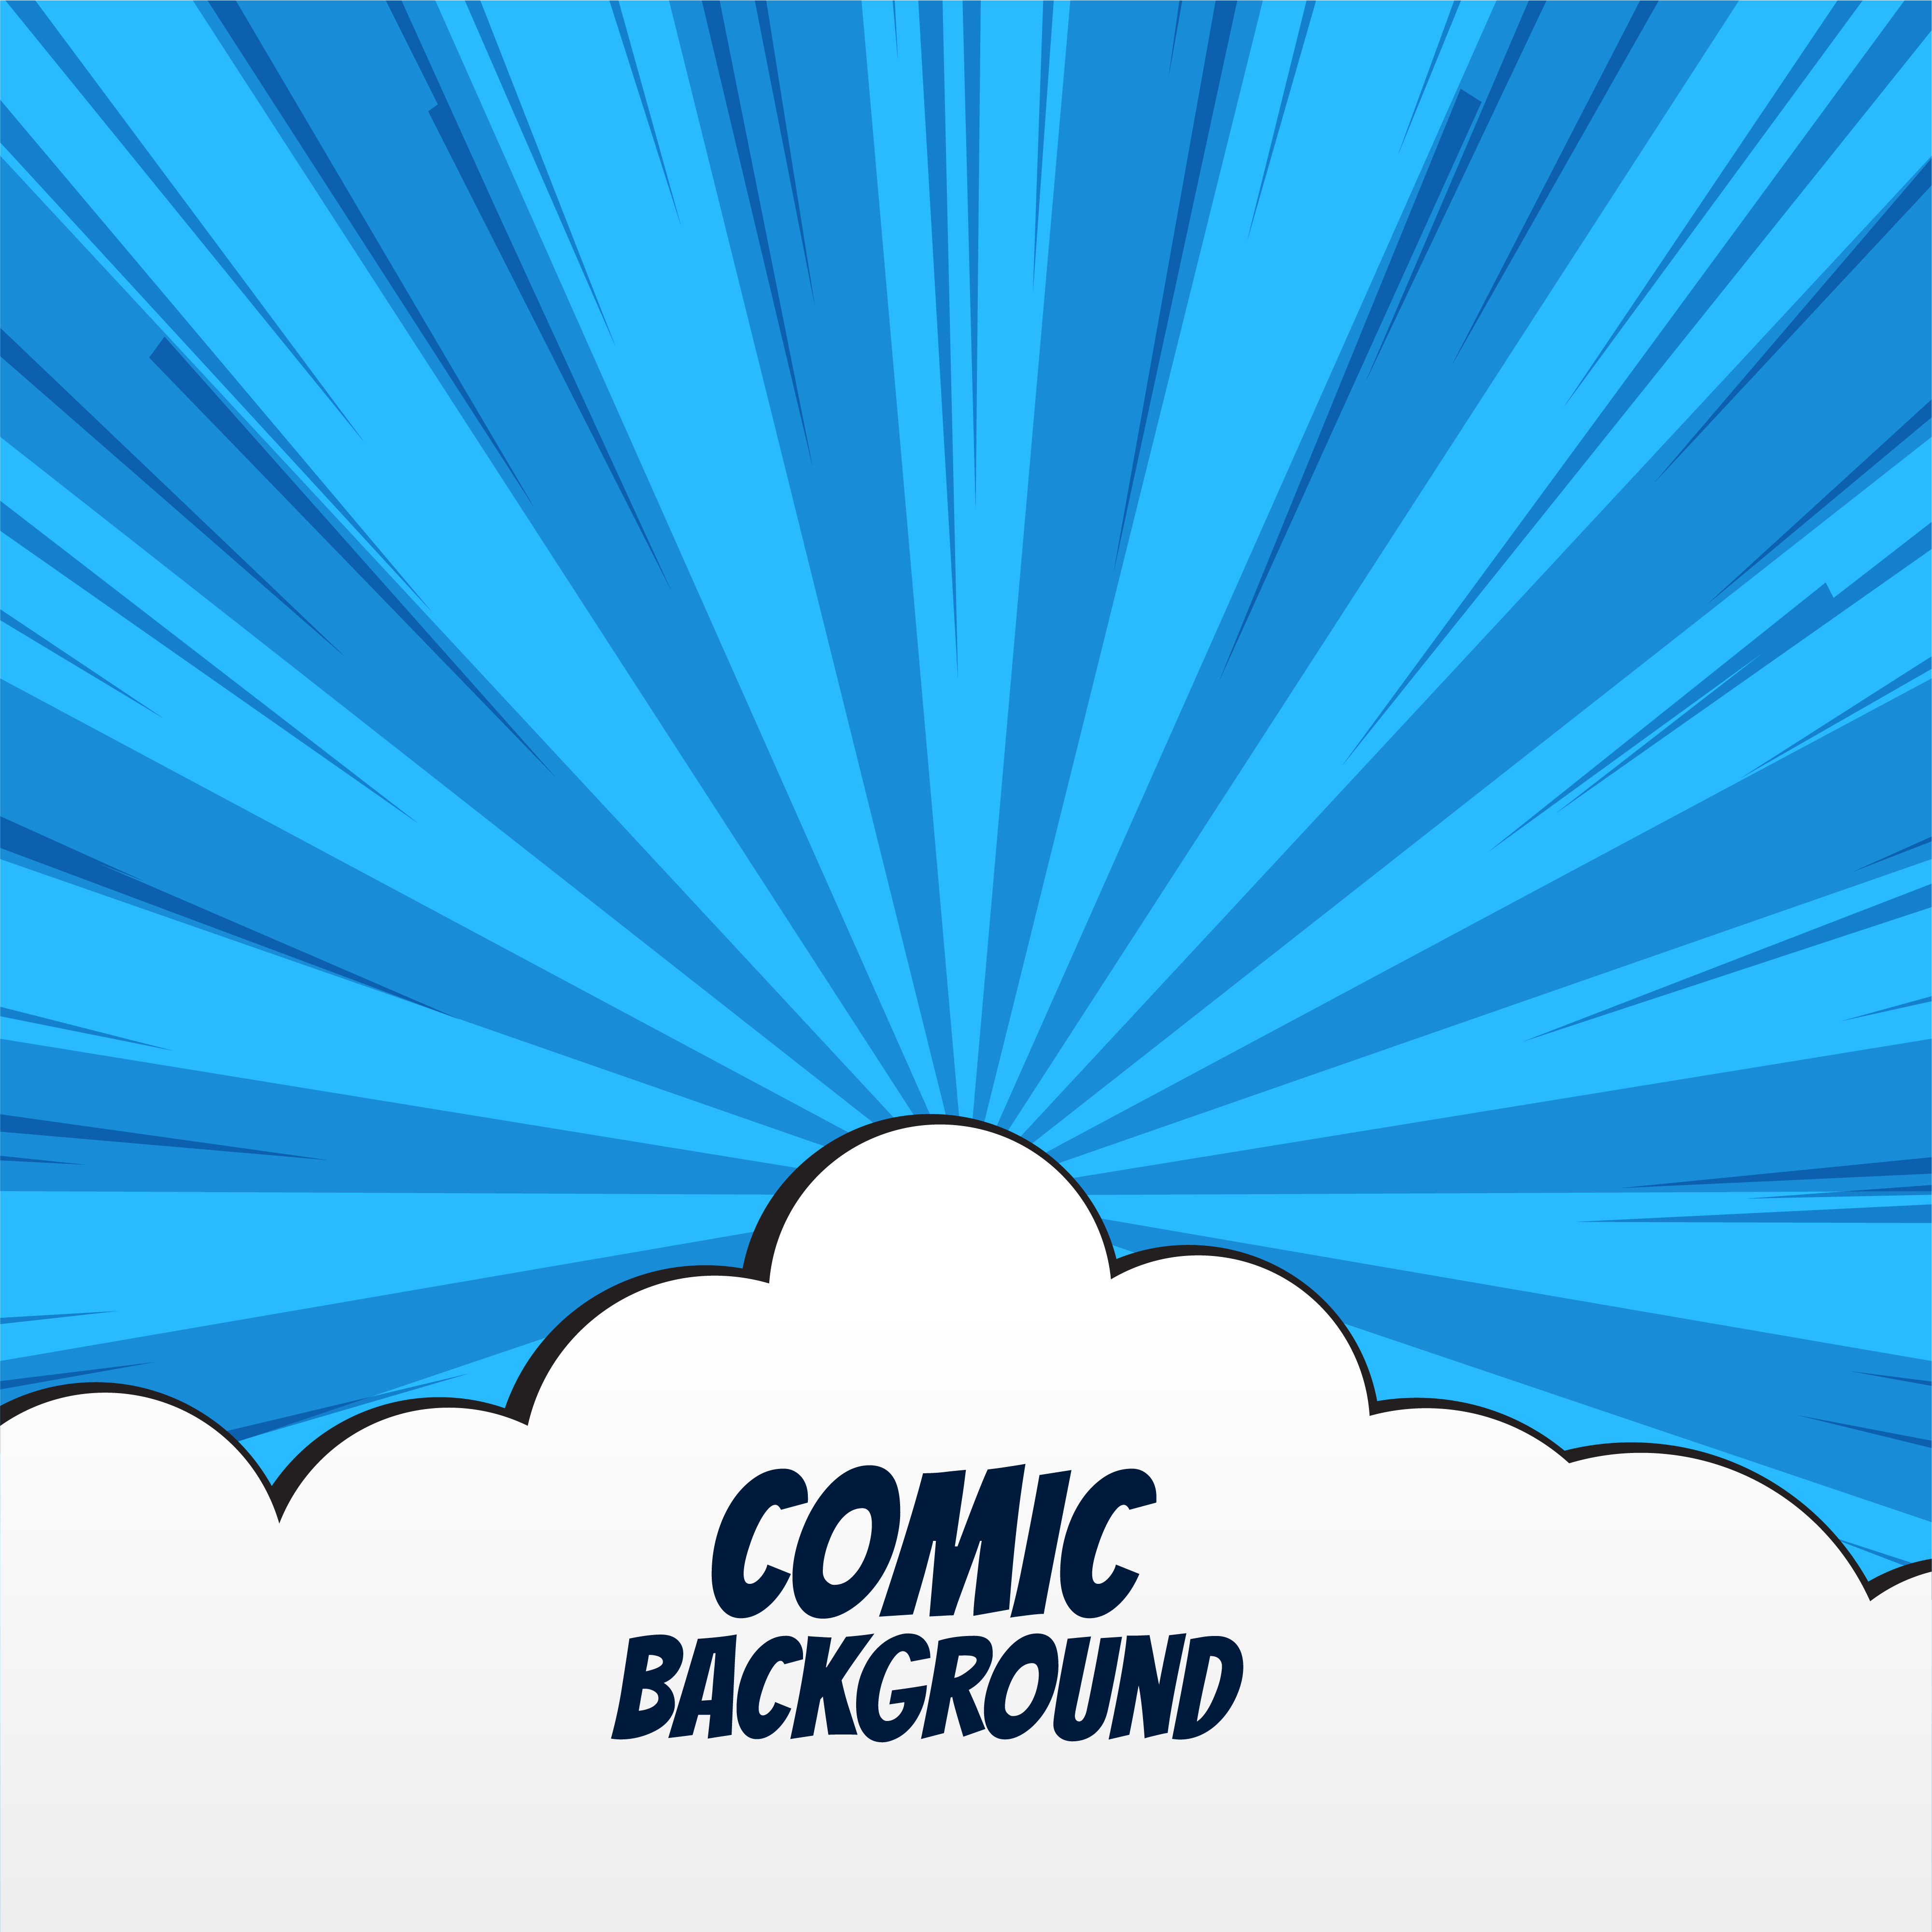 comic background with clouds and rays download free